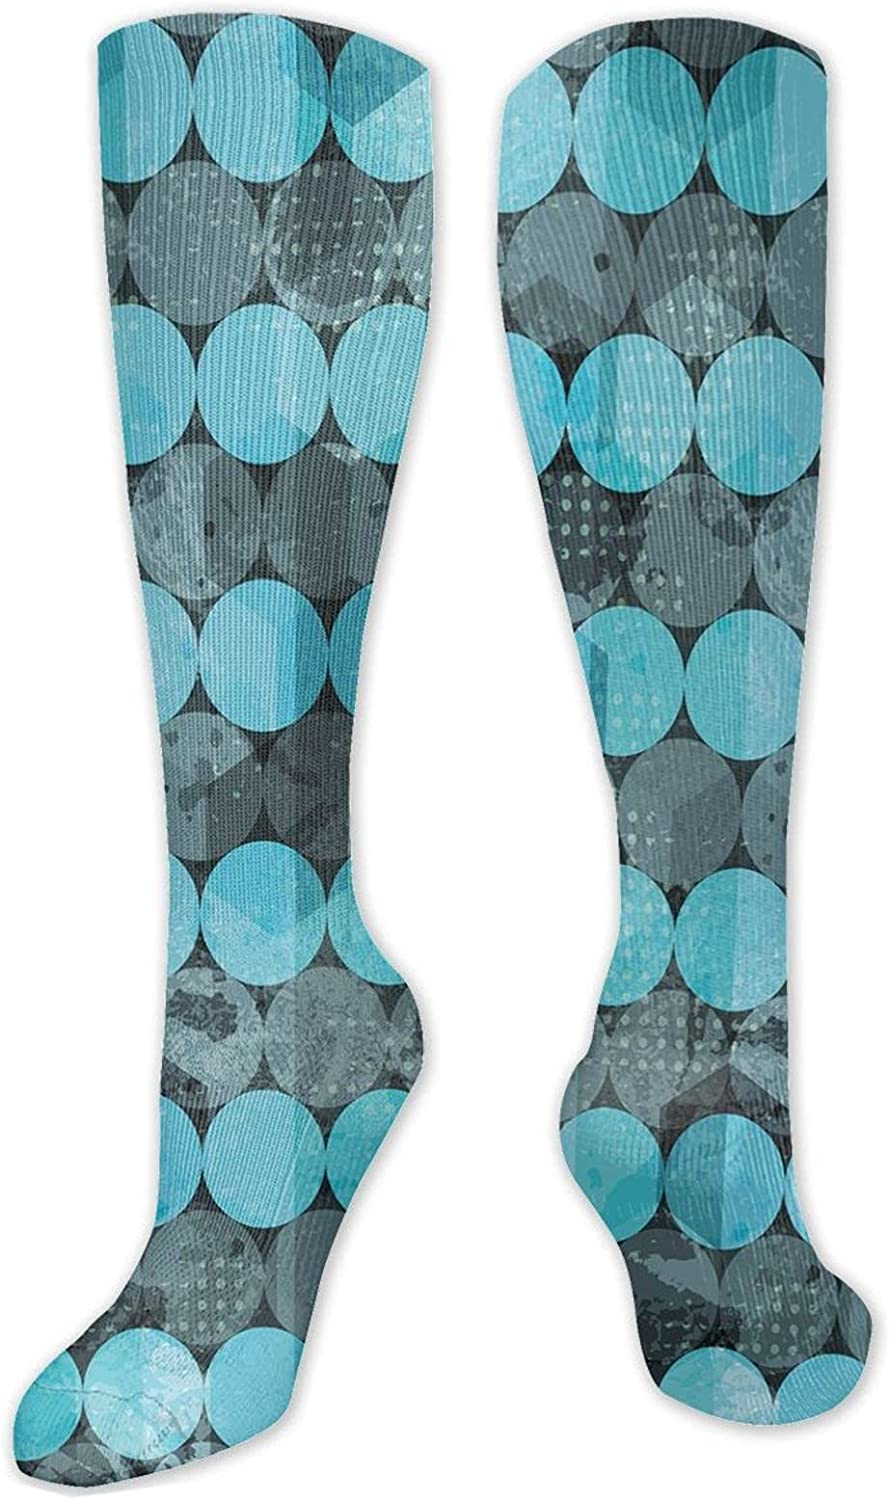 Gifts Unisex Fashion Knee High One OFFicial site Socks Size(50CM